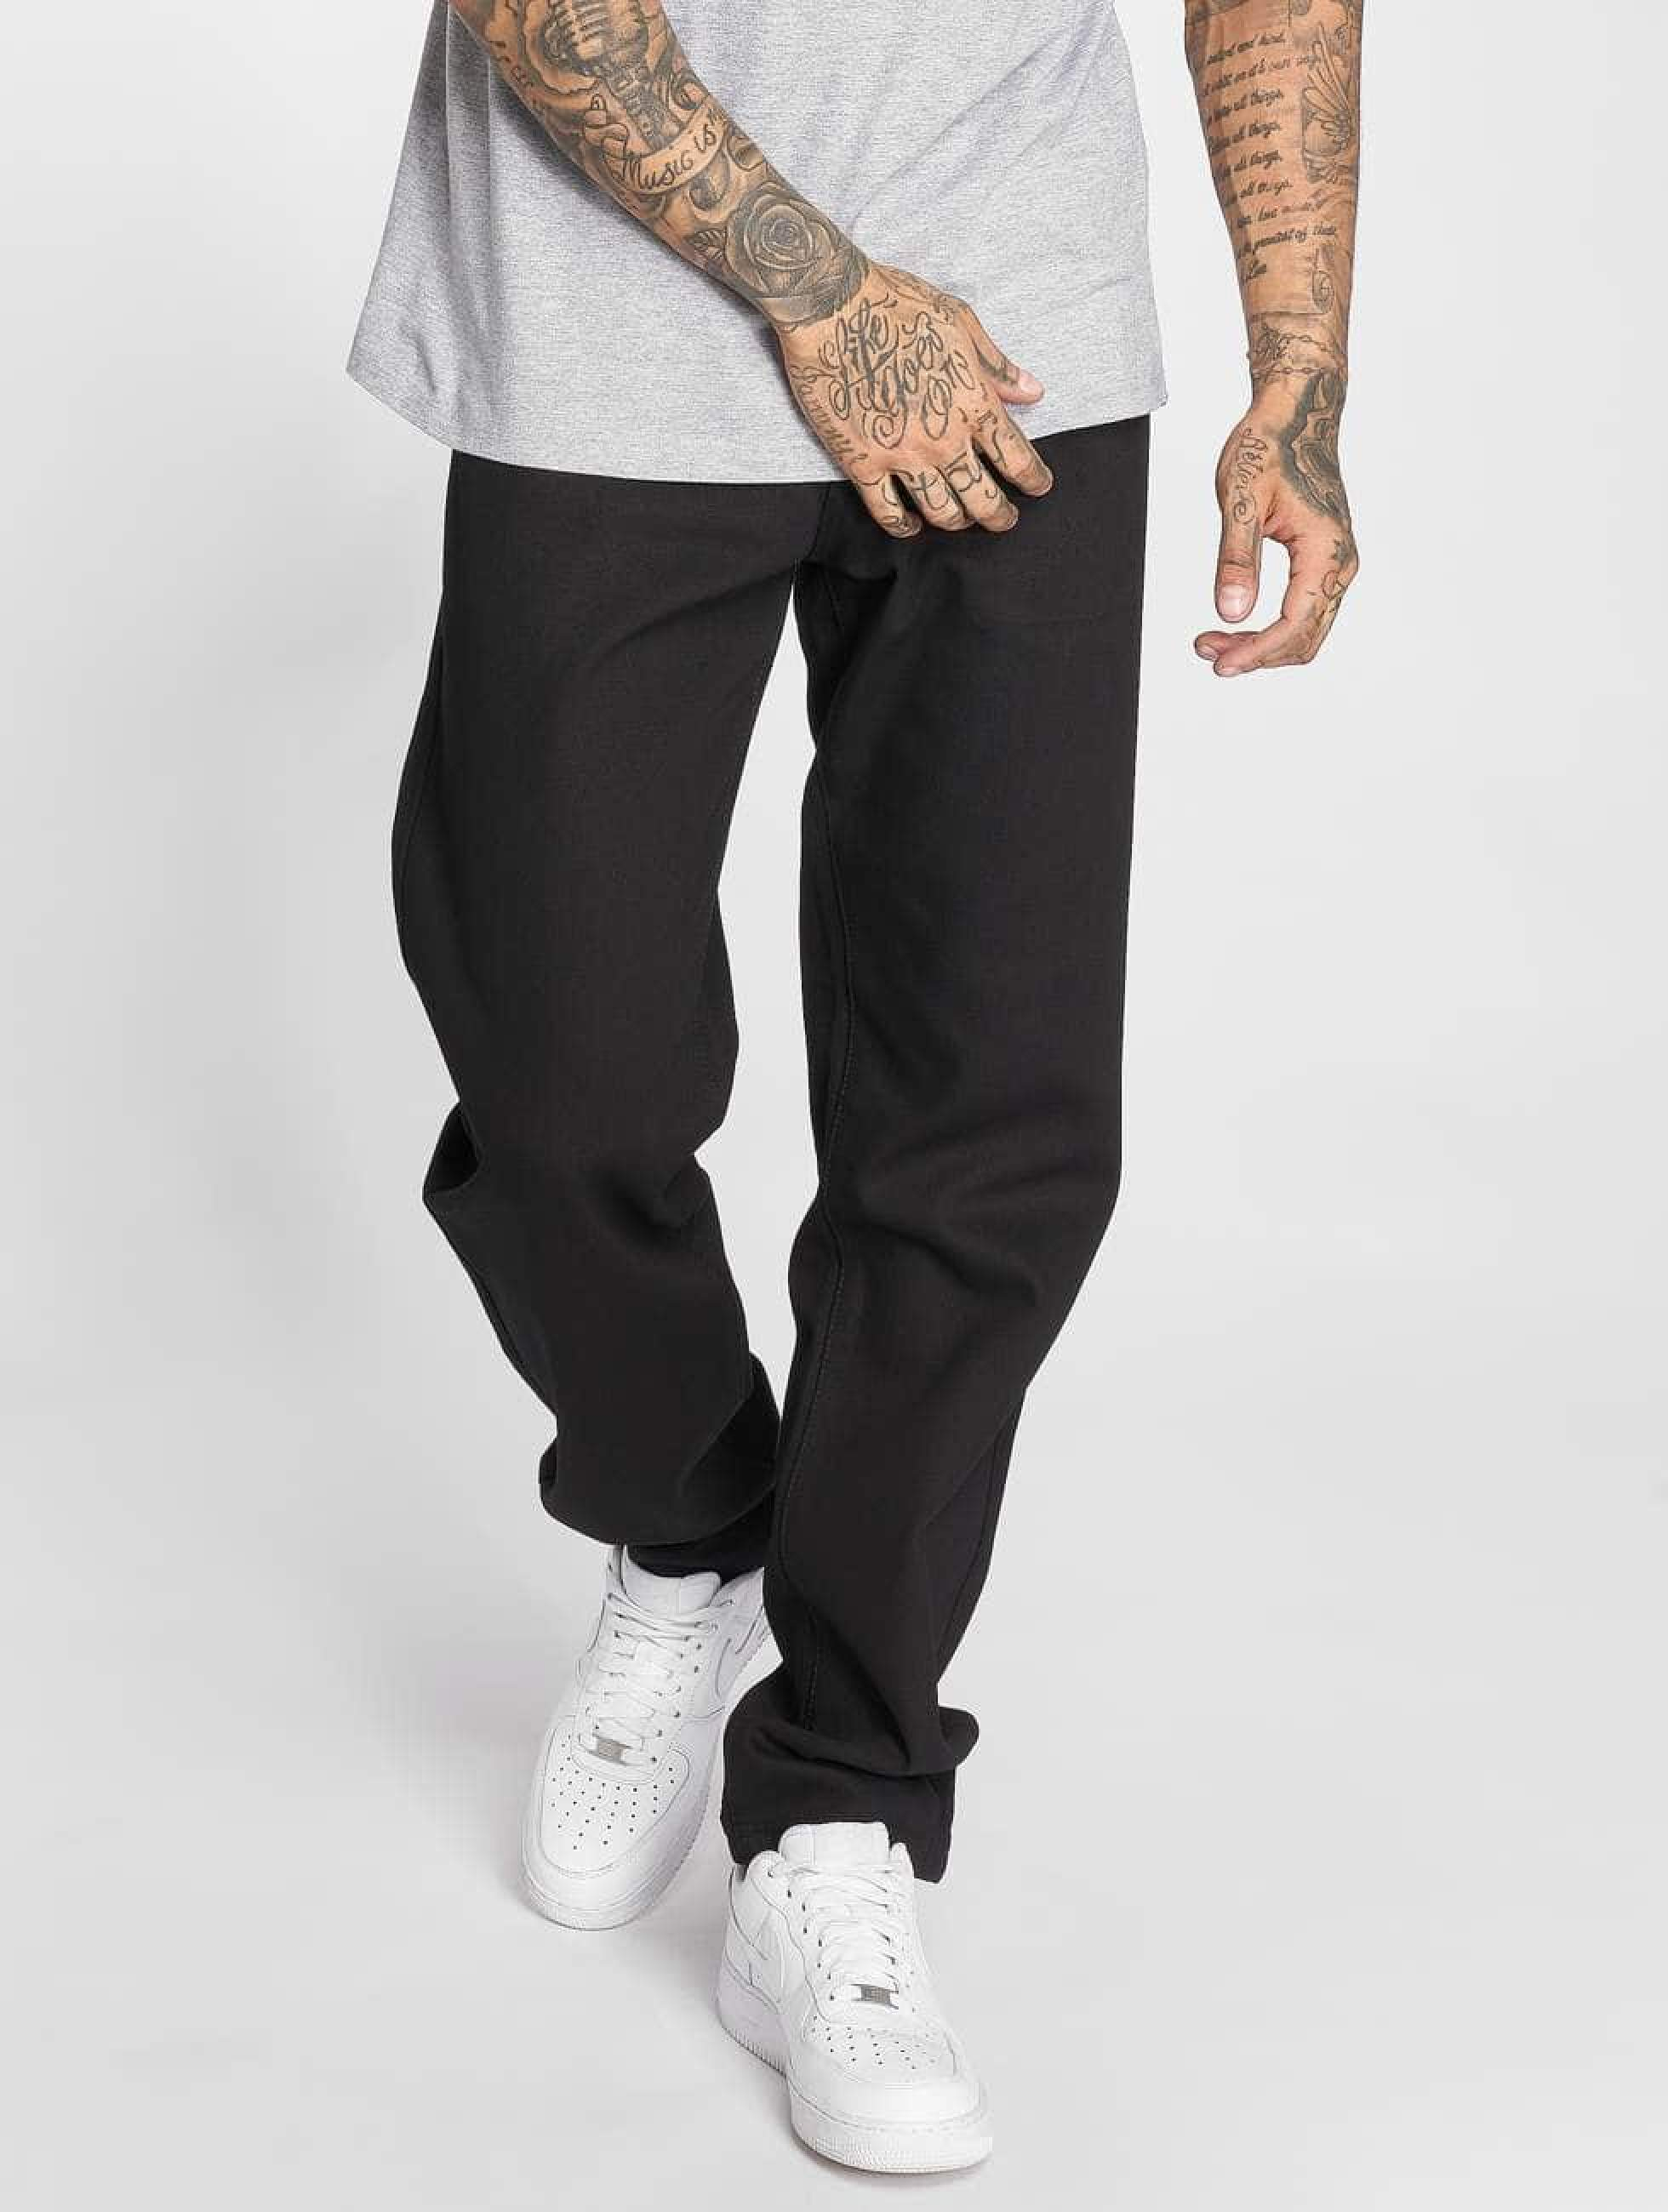 Thug Life / Carrot Fit Jeans B . Denim in black W 34 L 32